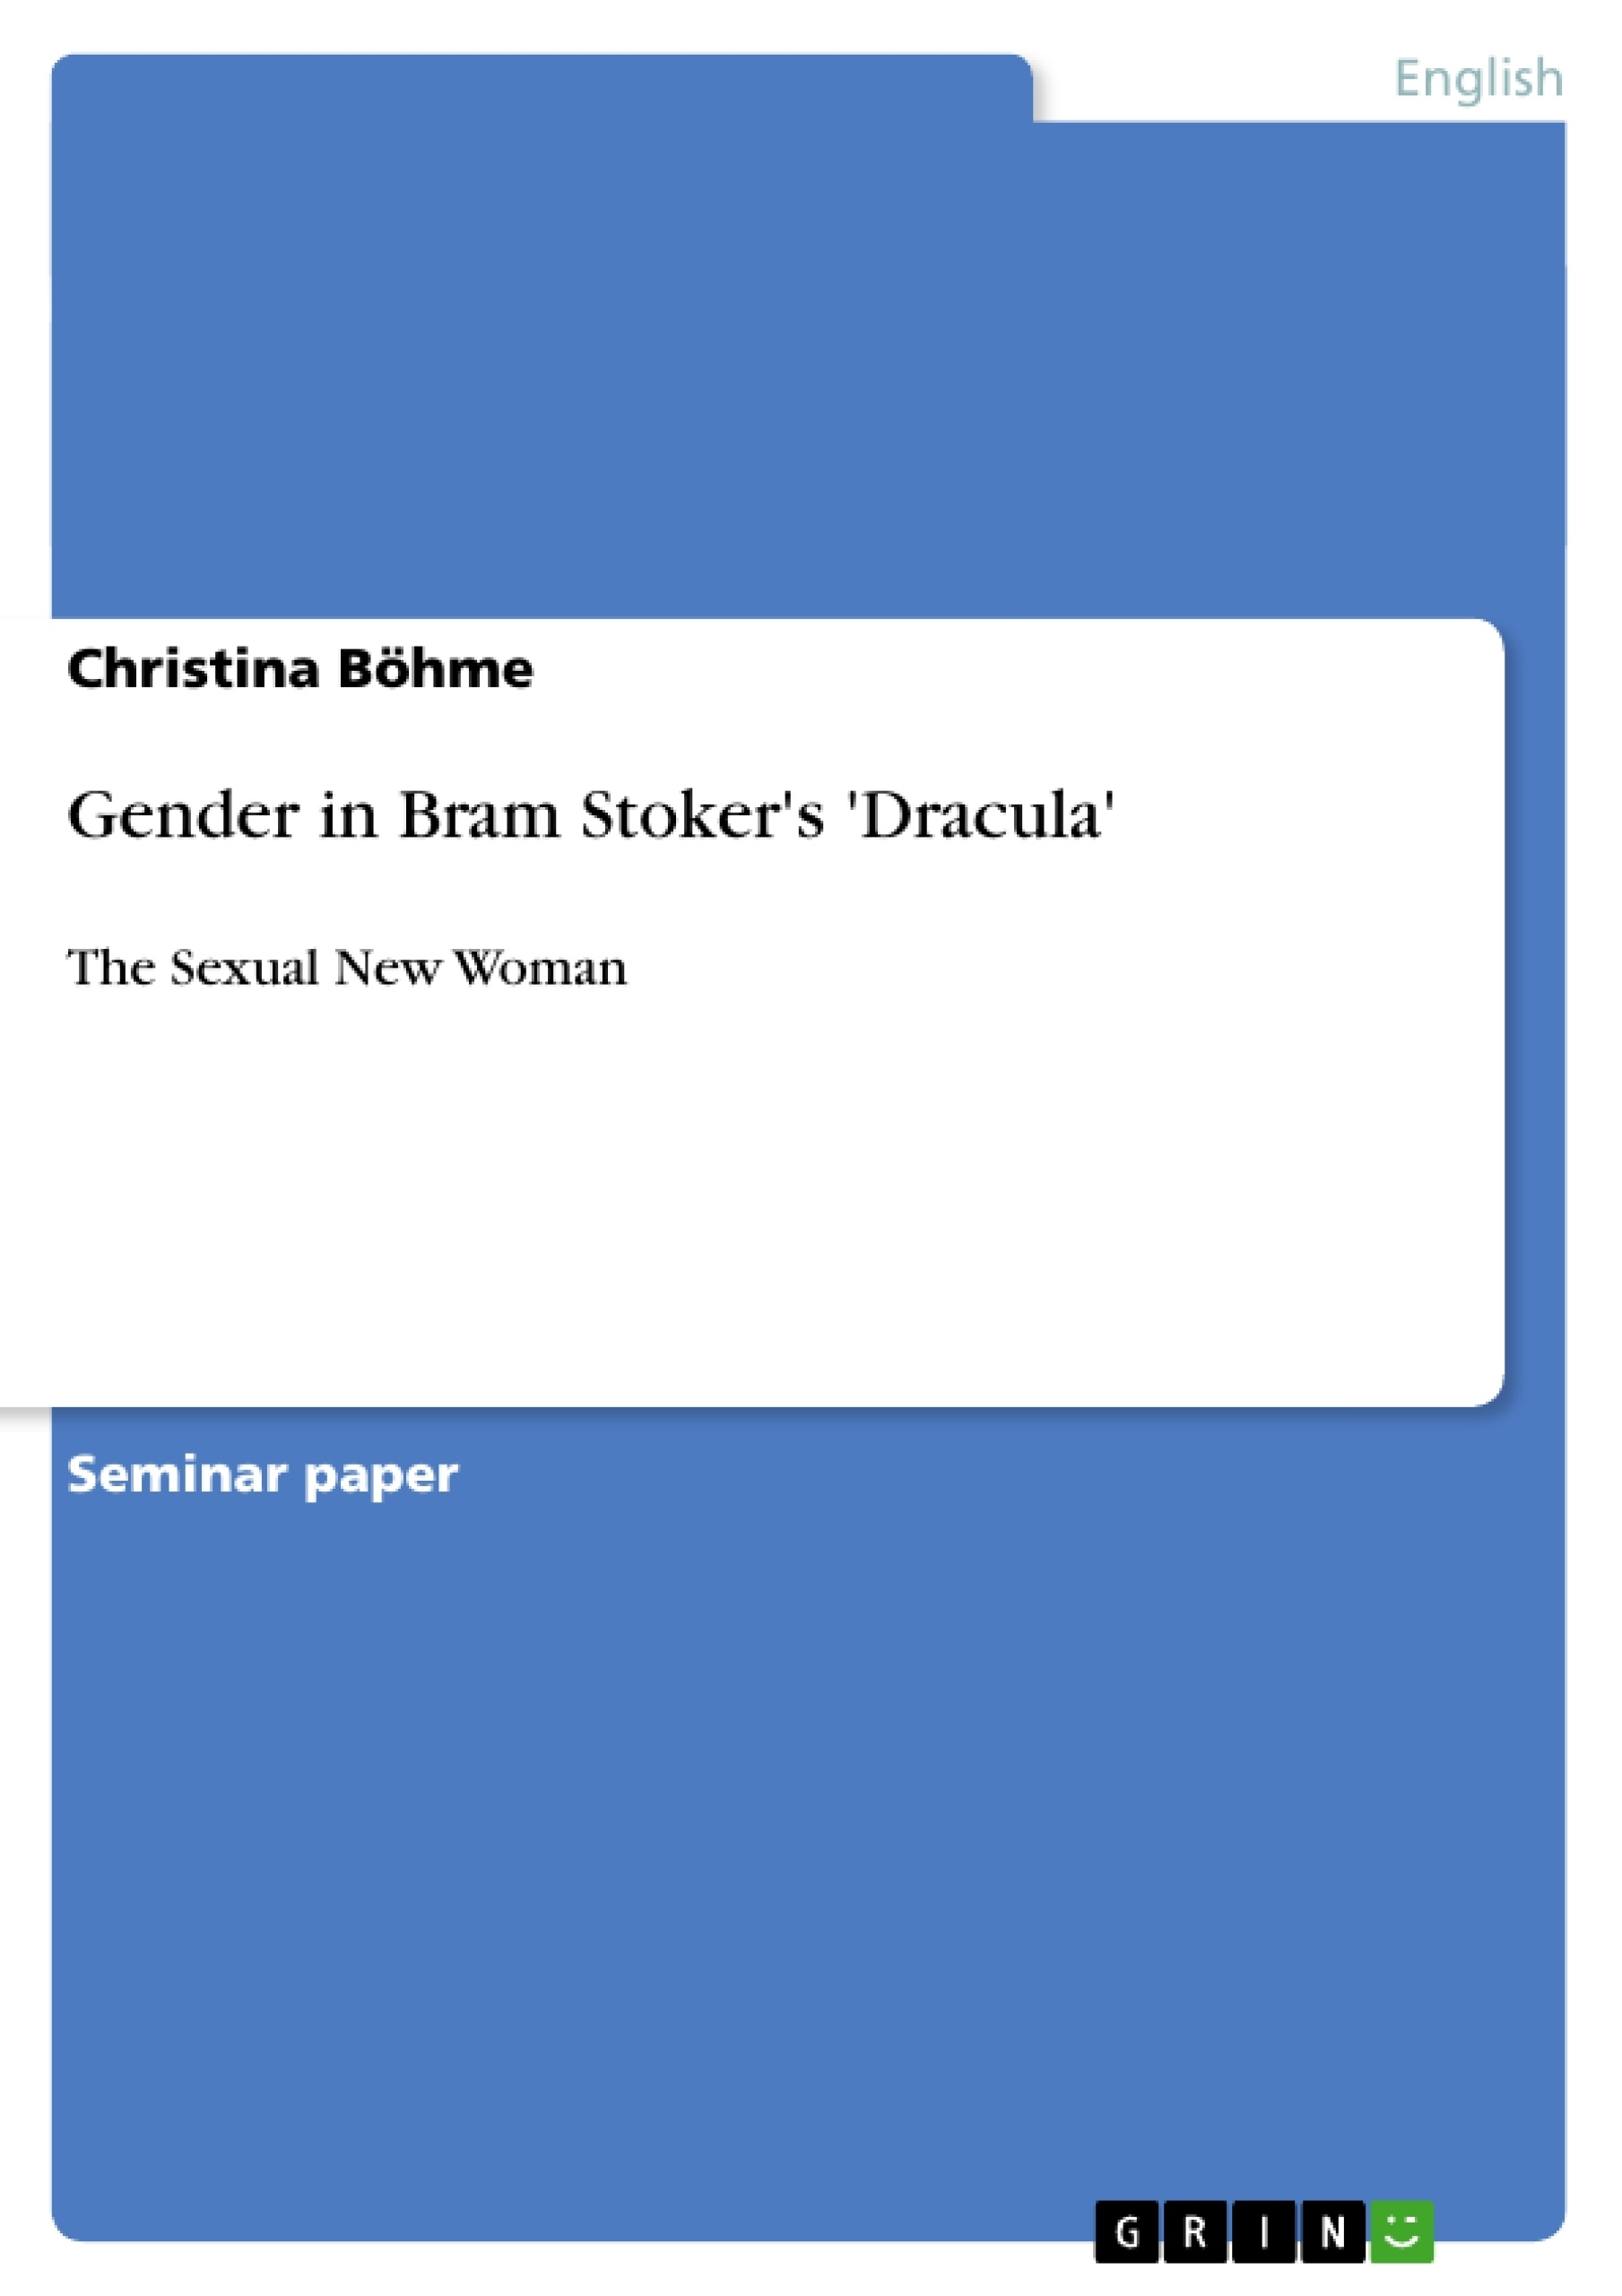 gender in bram stoker s dracula publish your master s thesis upload your own papers earn money and win an iphone 7